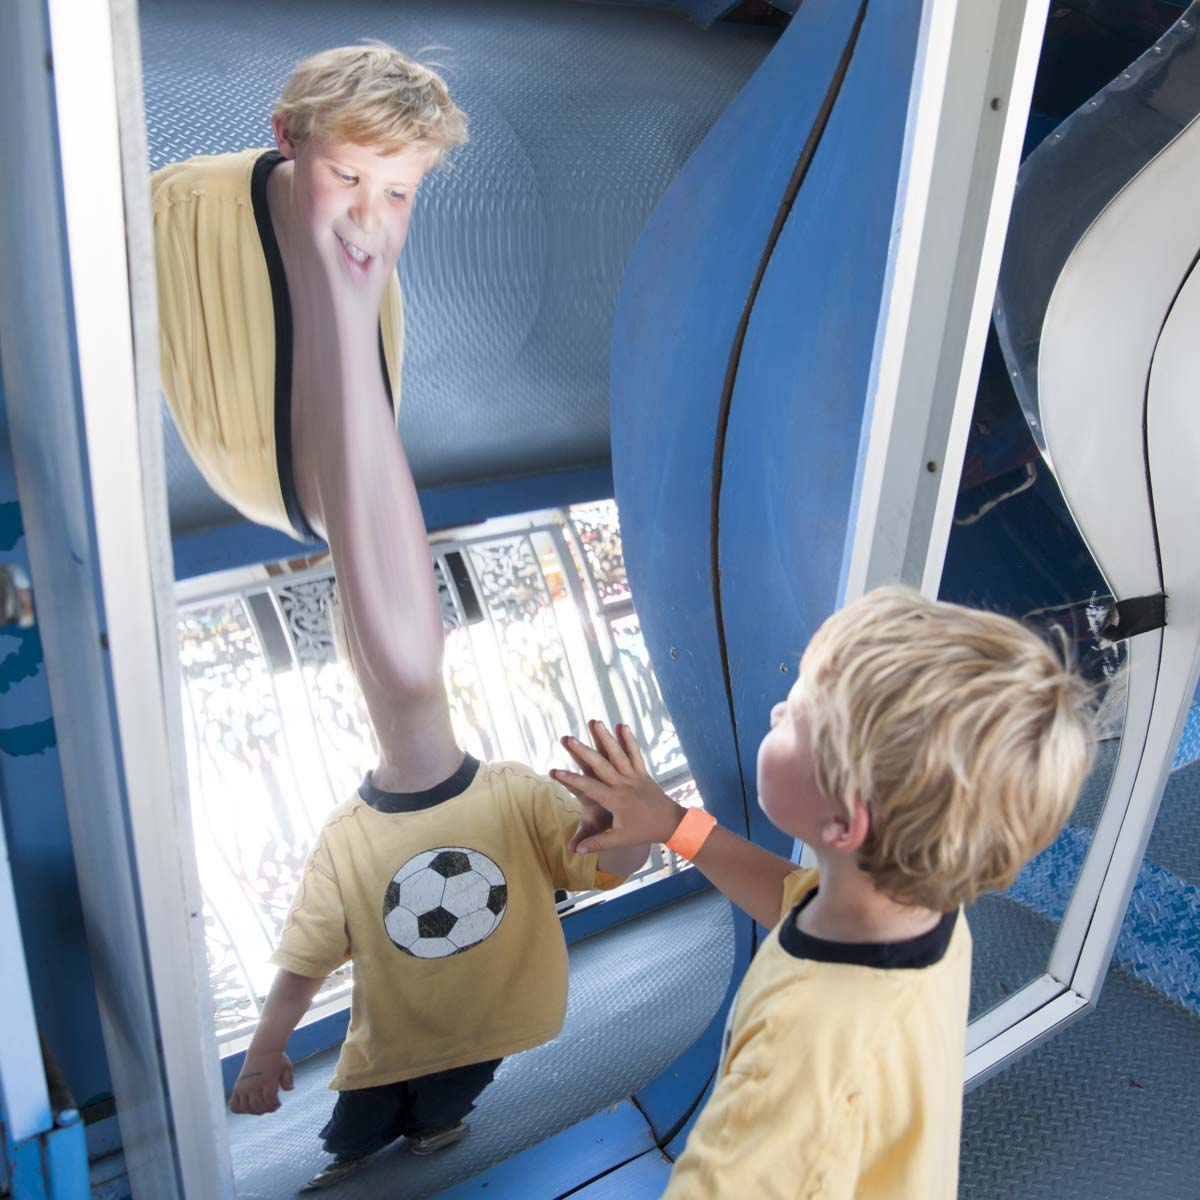 Little boy smiling at his reflection in a Fun House mirror